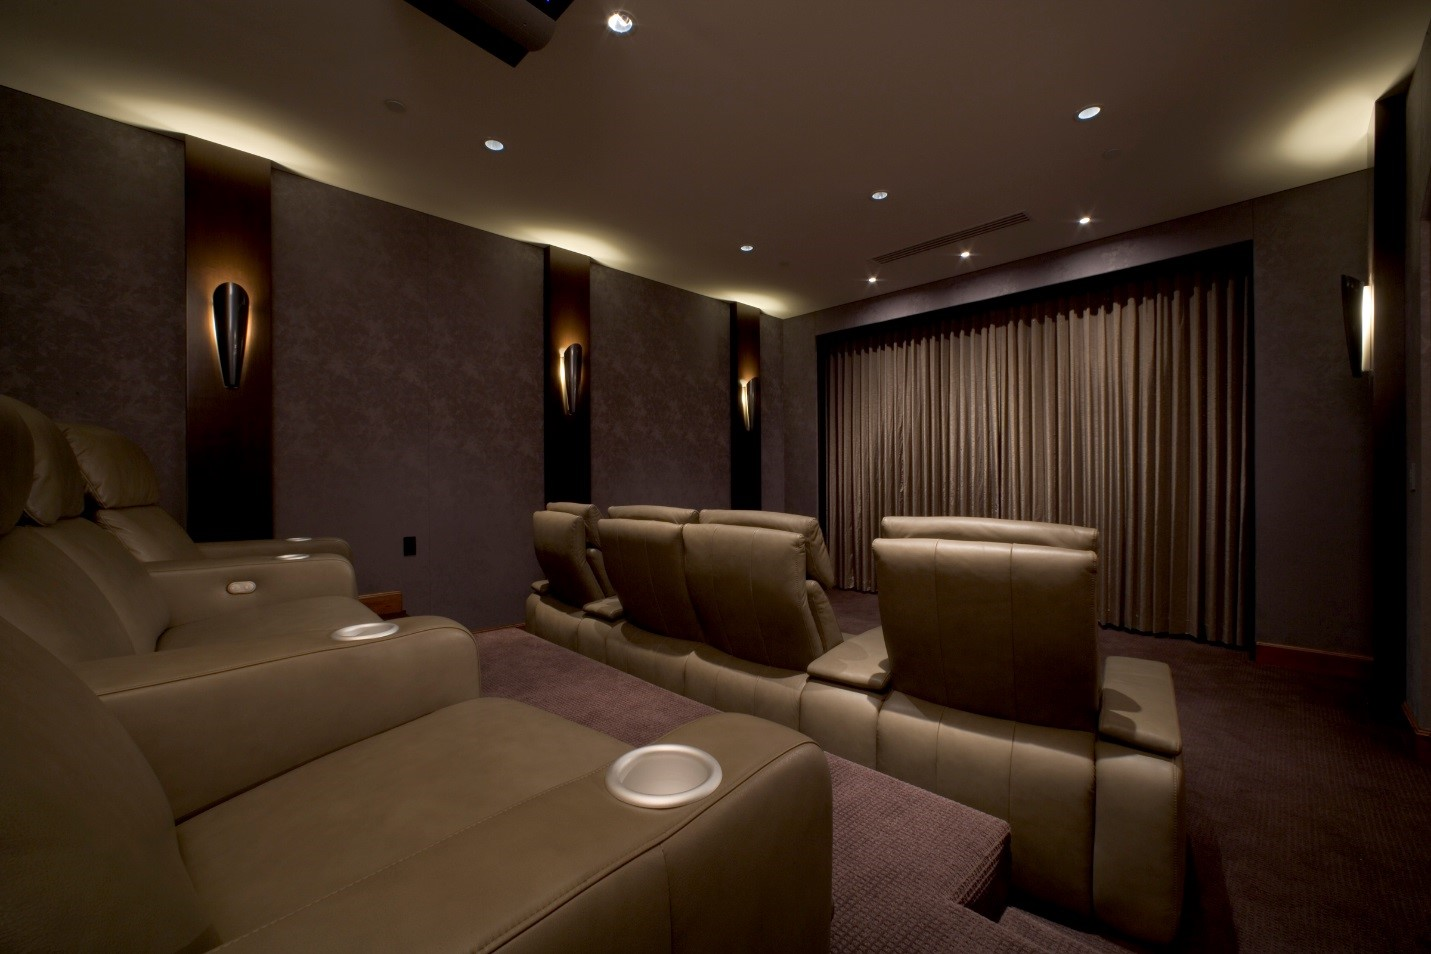 Automating Your Home Theater Installation: What Are the Benefits?